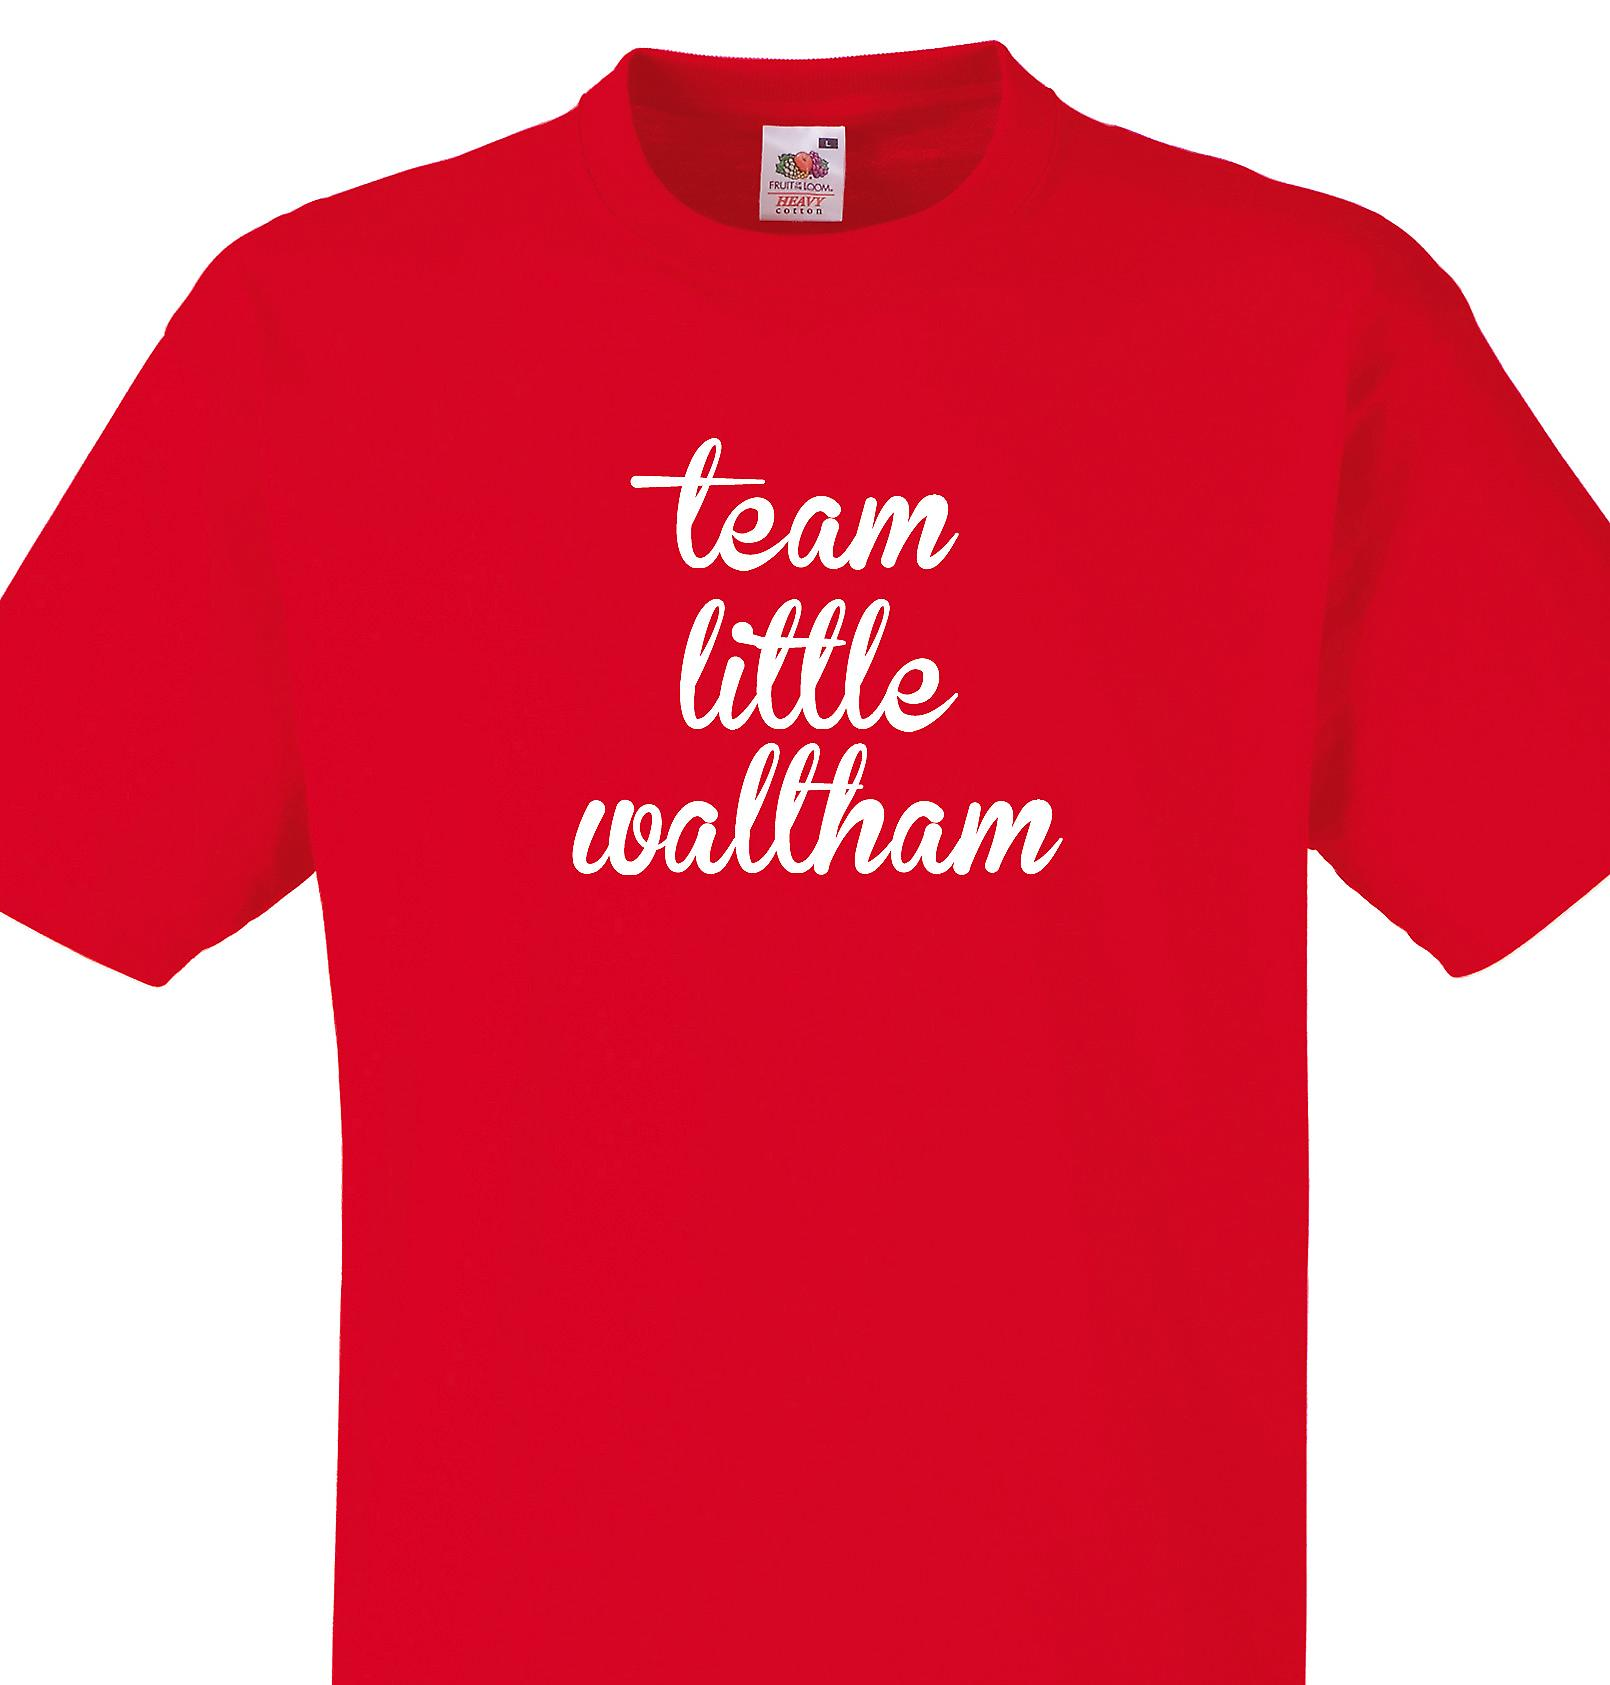 Team Little waltham Red T shirt